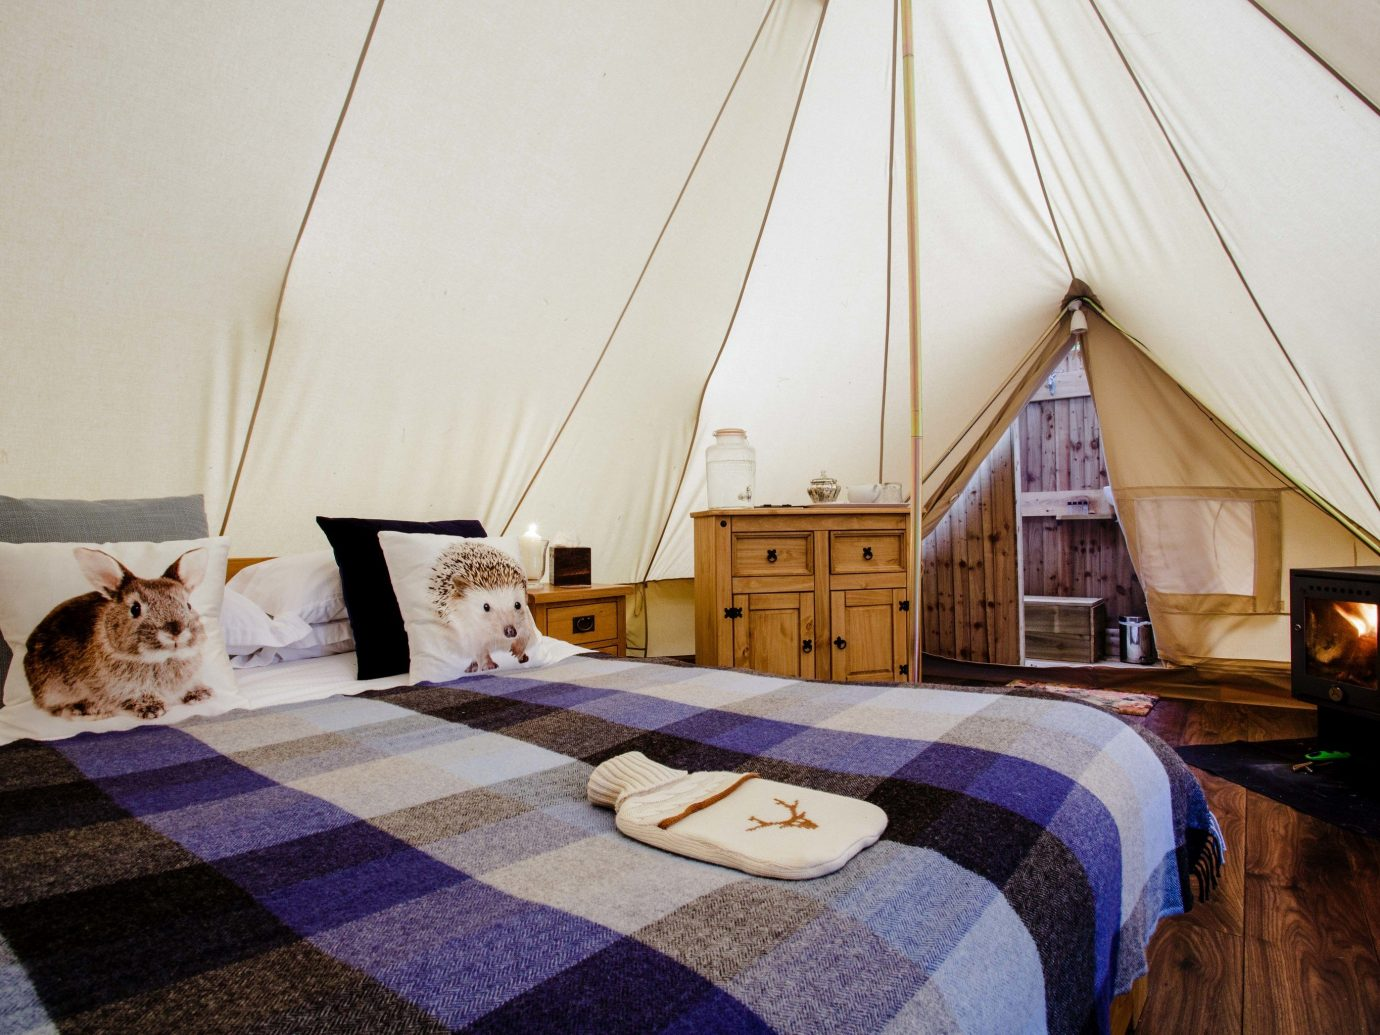 Glamping Outdoors + Adventure Trip Ideas room Bedroom bed interior design furniture Suite home estate floor ceiling flooring